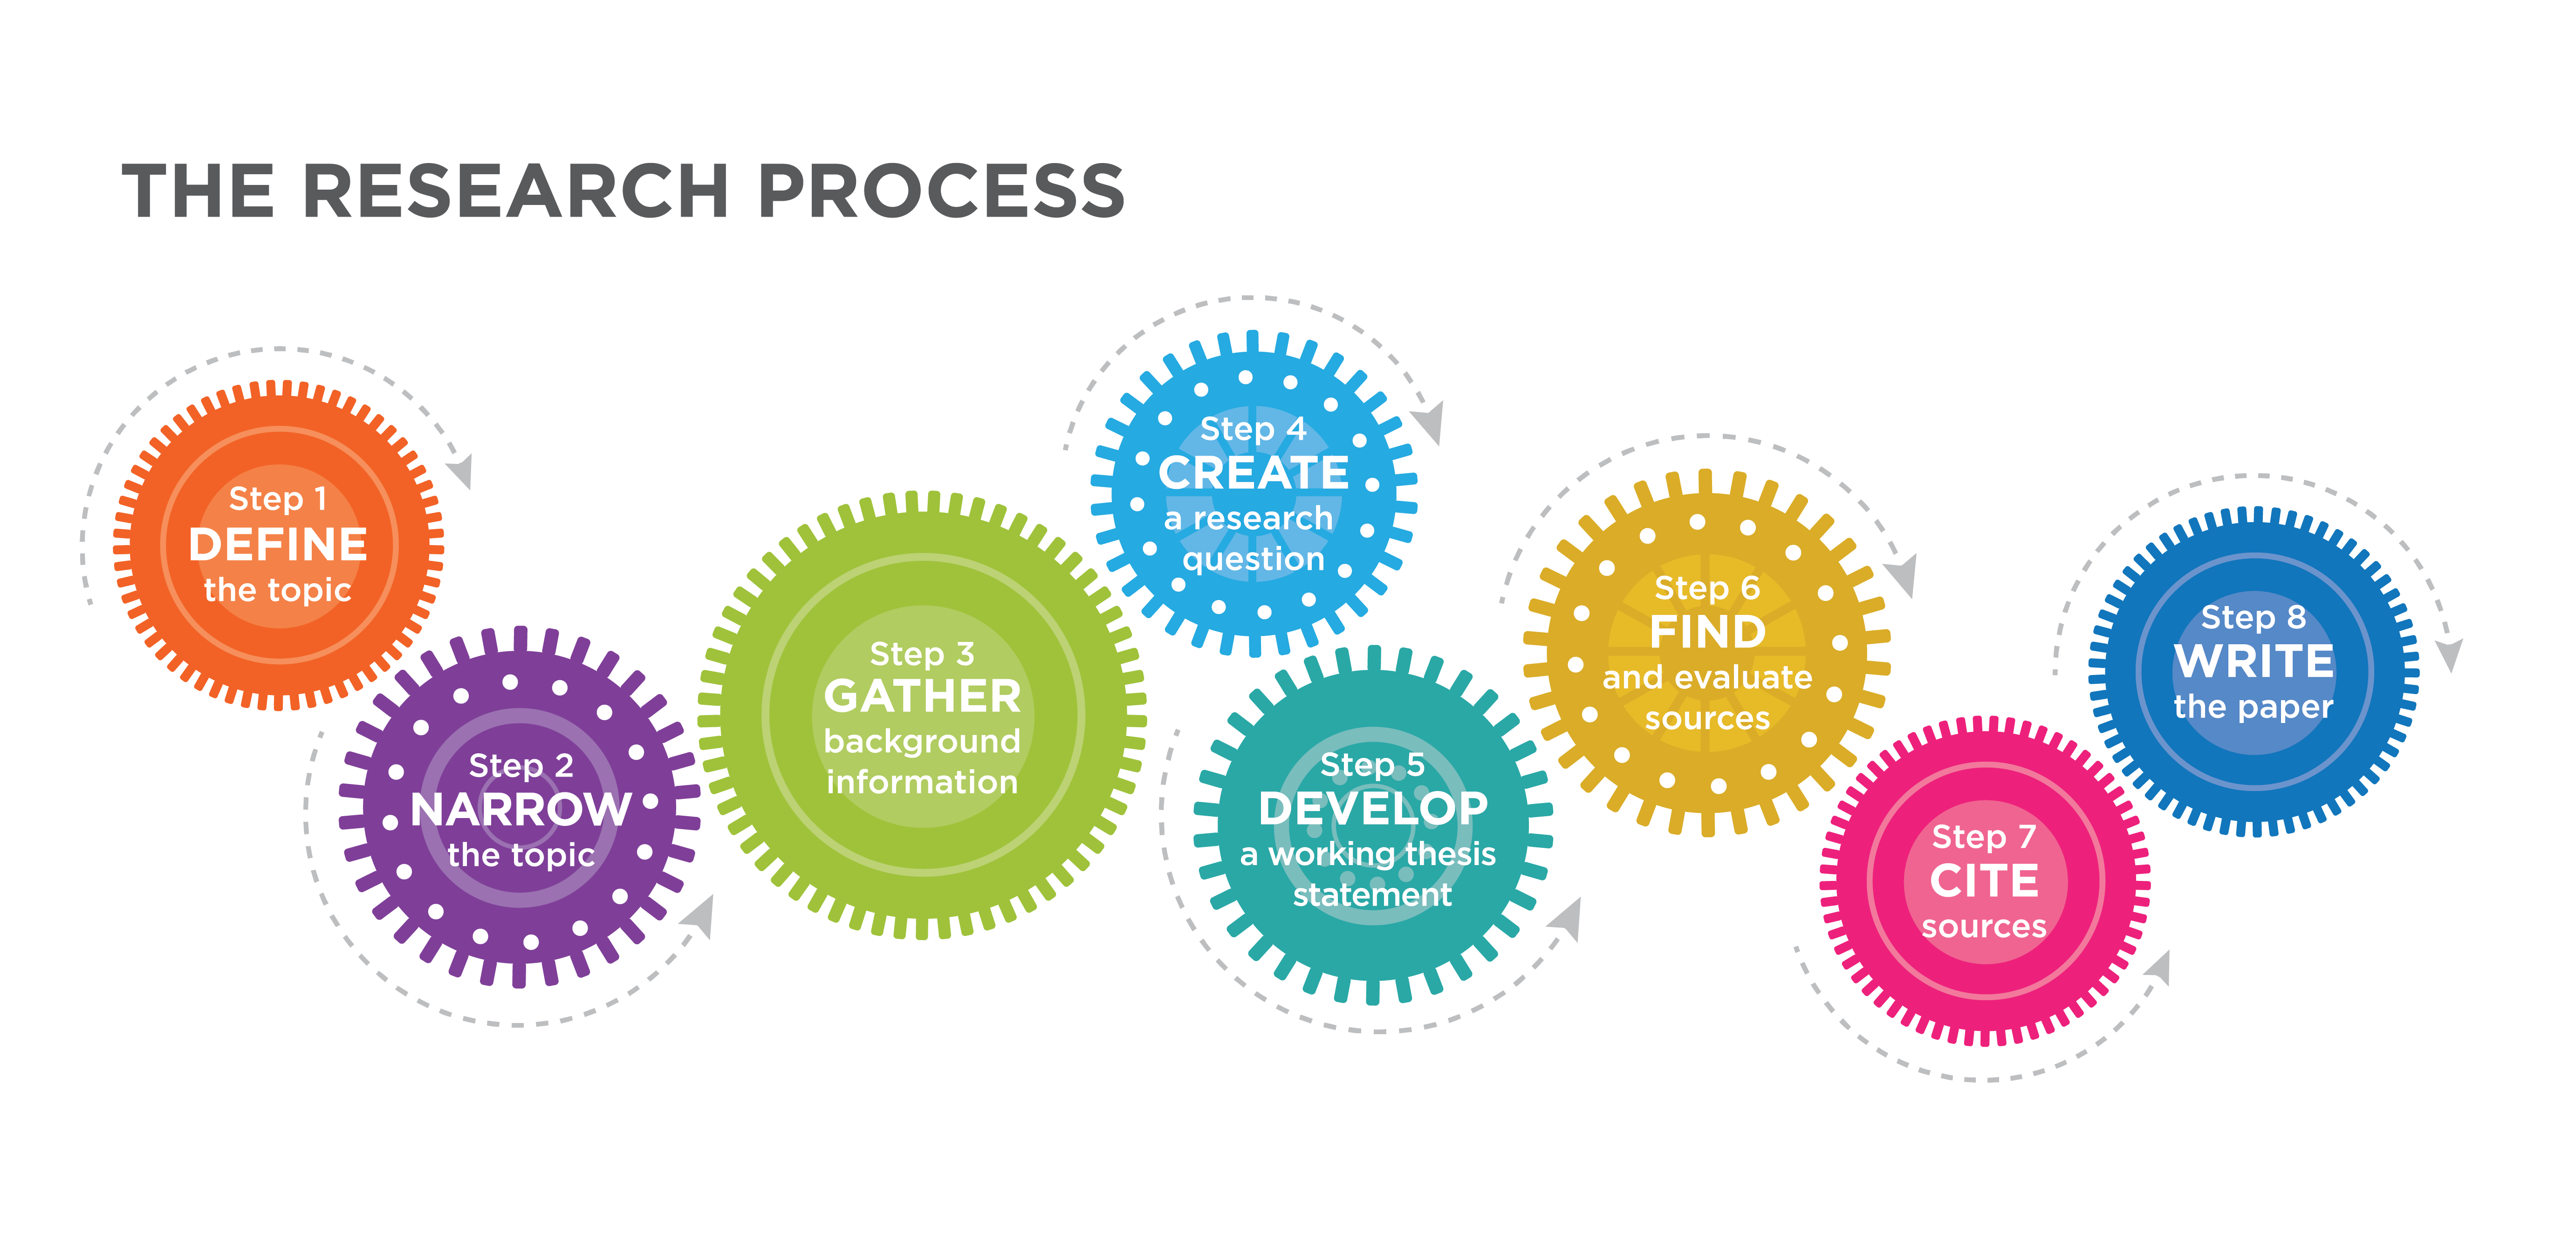 The Research Process steps in cogs. Step 1: define the topic, step 2: narrow the topic, step 3: gather background information, step 4: create a research question, step 5: develop a working thesis statement, step 6: find and evaluate sources, step 7: cite sources, step 8: write the paper